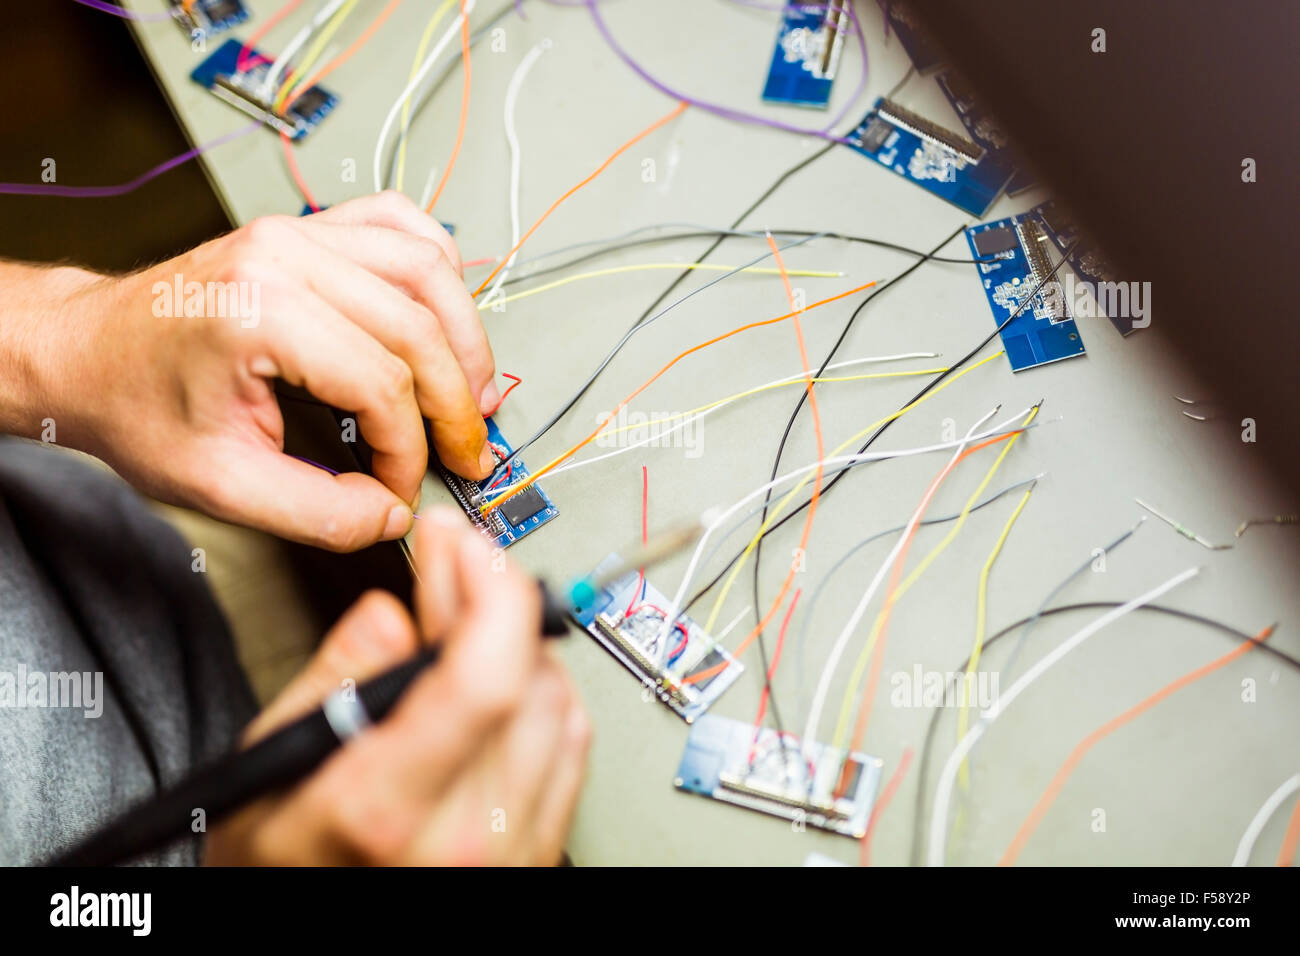 Hardware chips being fixed by soldering - Stock Image